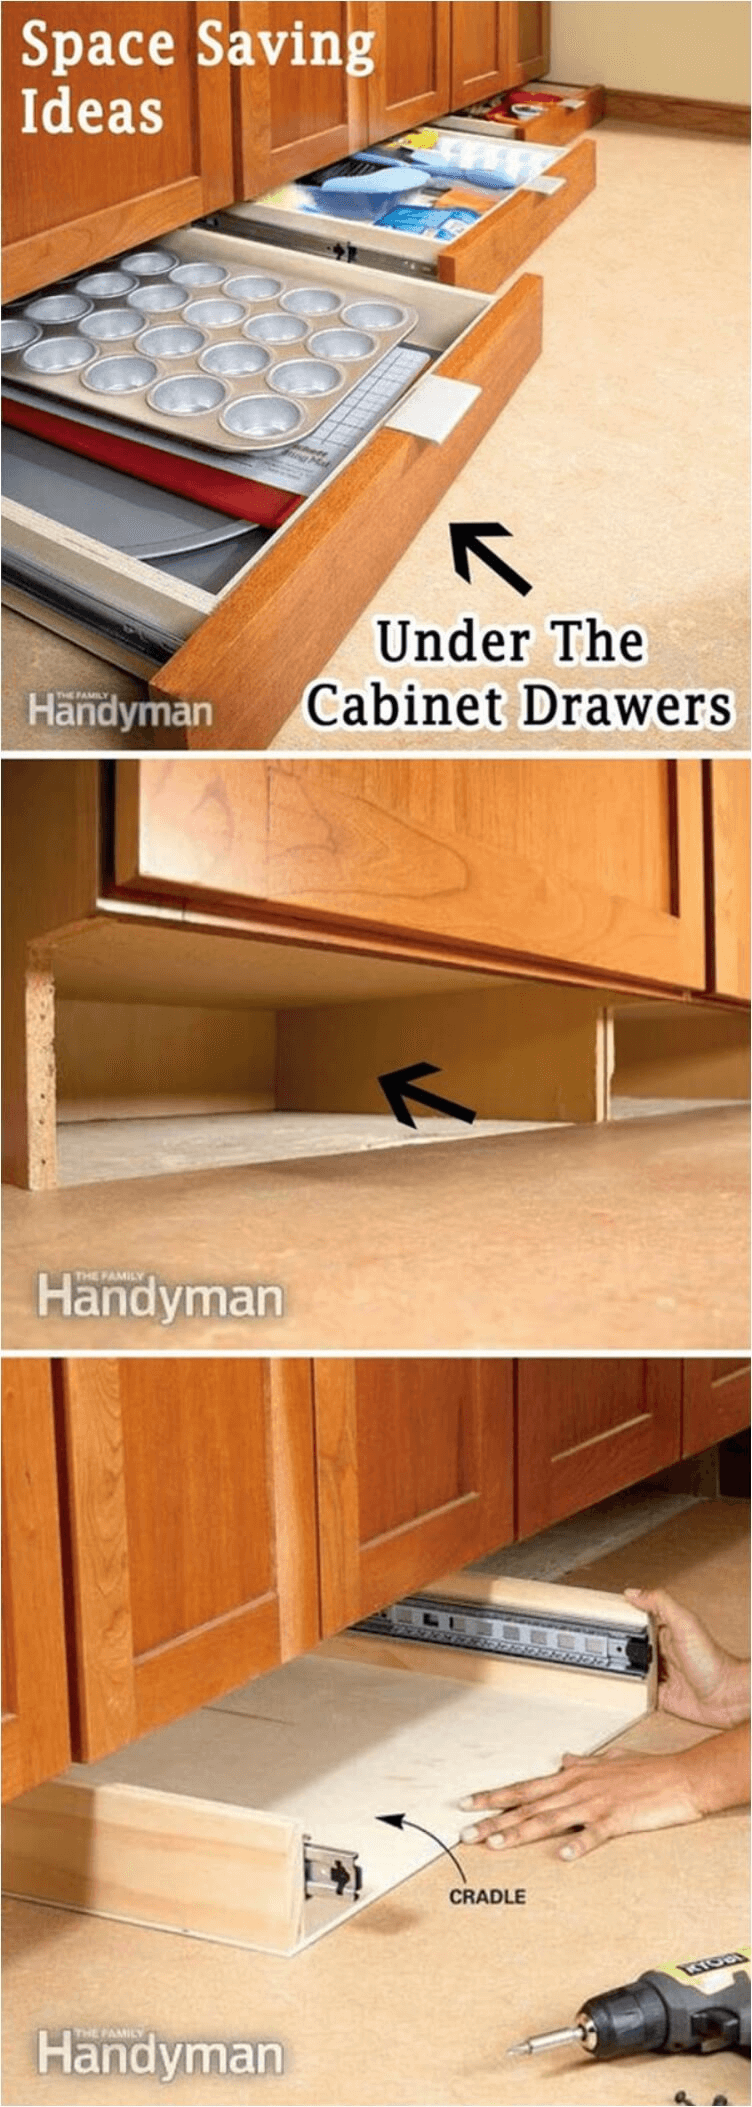 STORAGE TIPS FOR SMALL KITCHEN. DRAWER UNDER CABINET DESIGN IDEAS